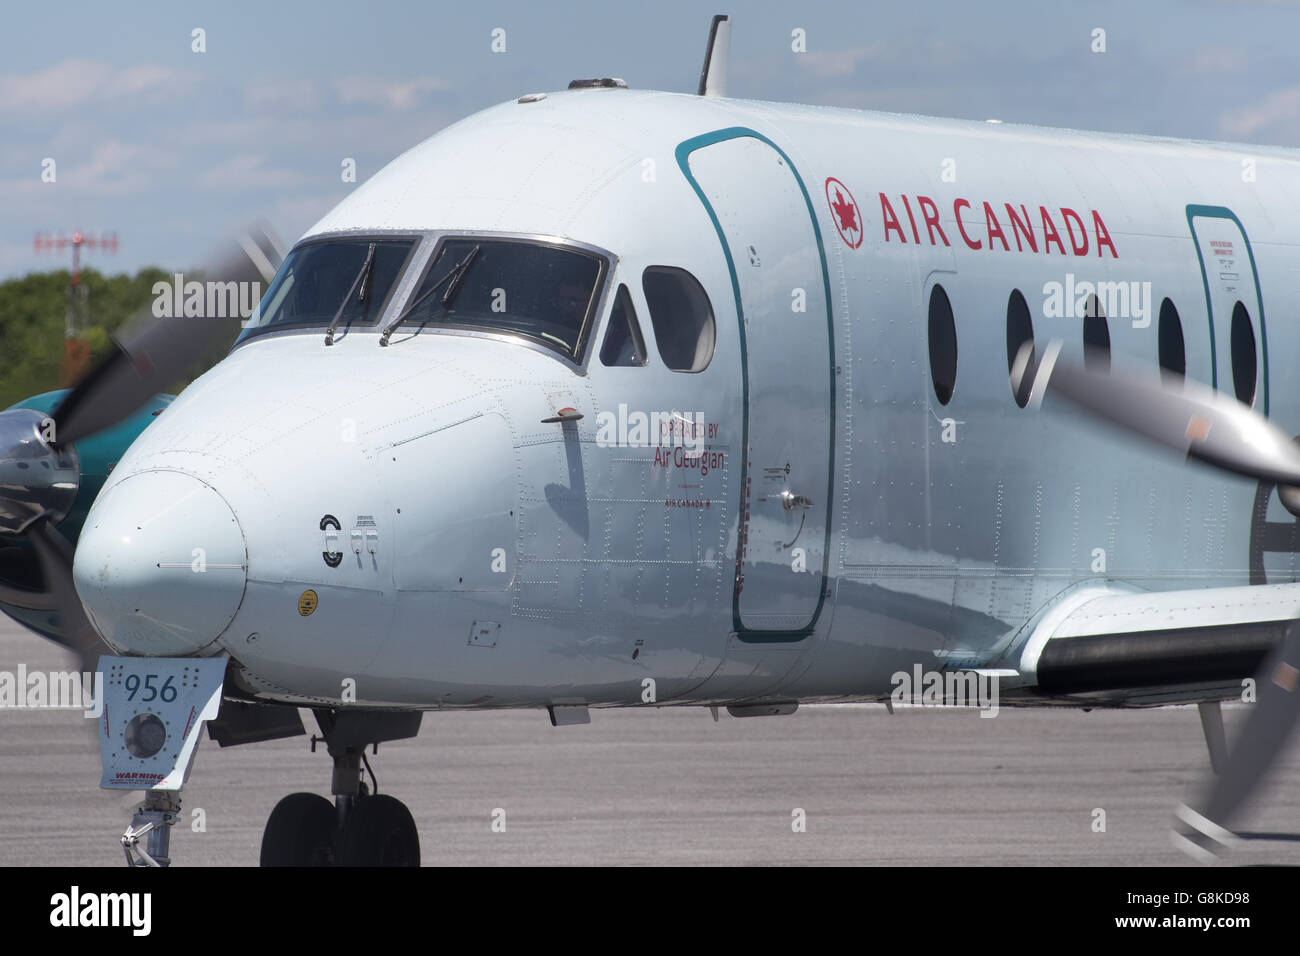 Air Canada Express Beechcraft 1900D aircraft, operated by Georgian air taxis to the runway before take-off from - Stock Image